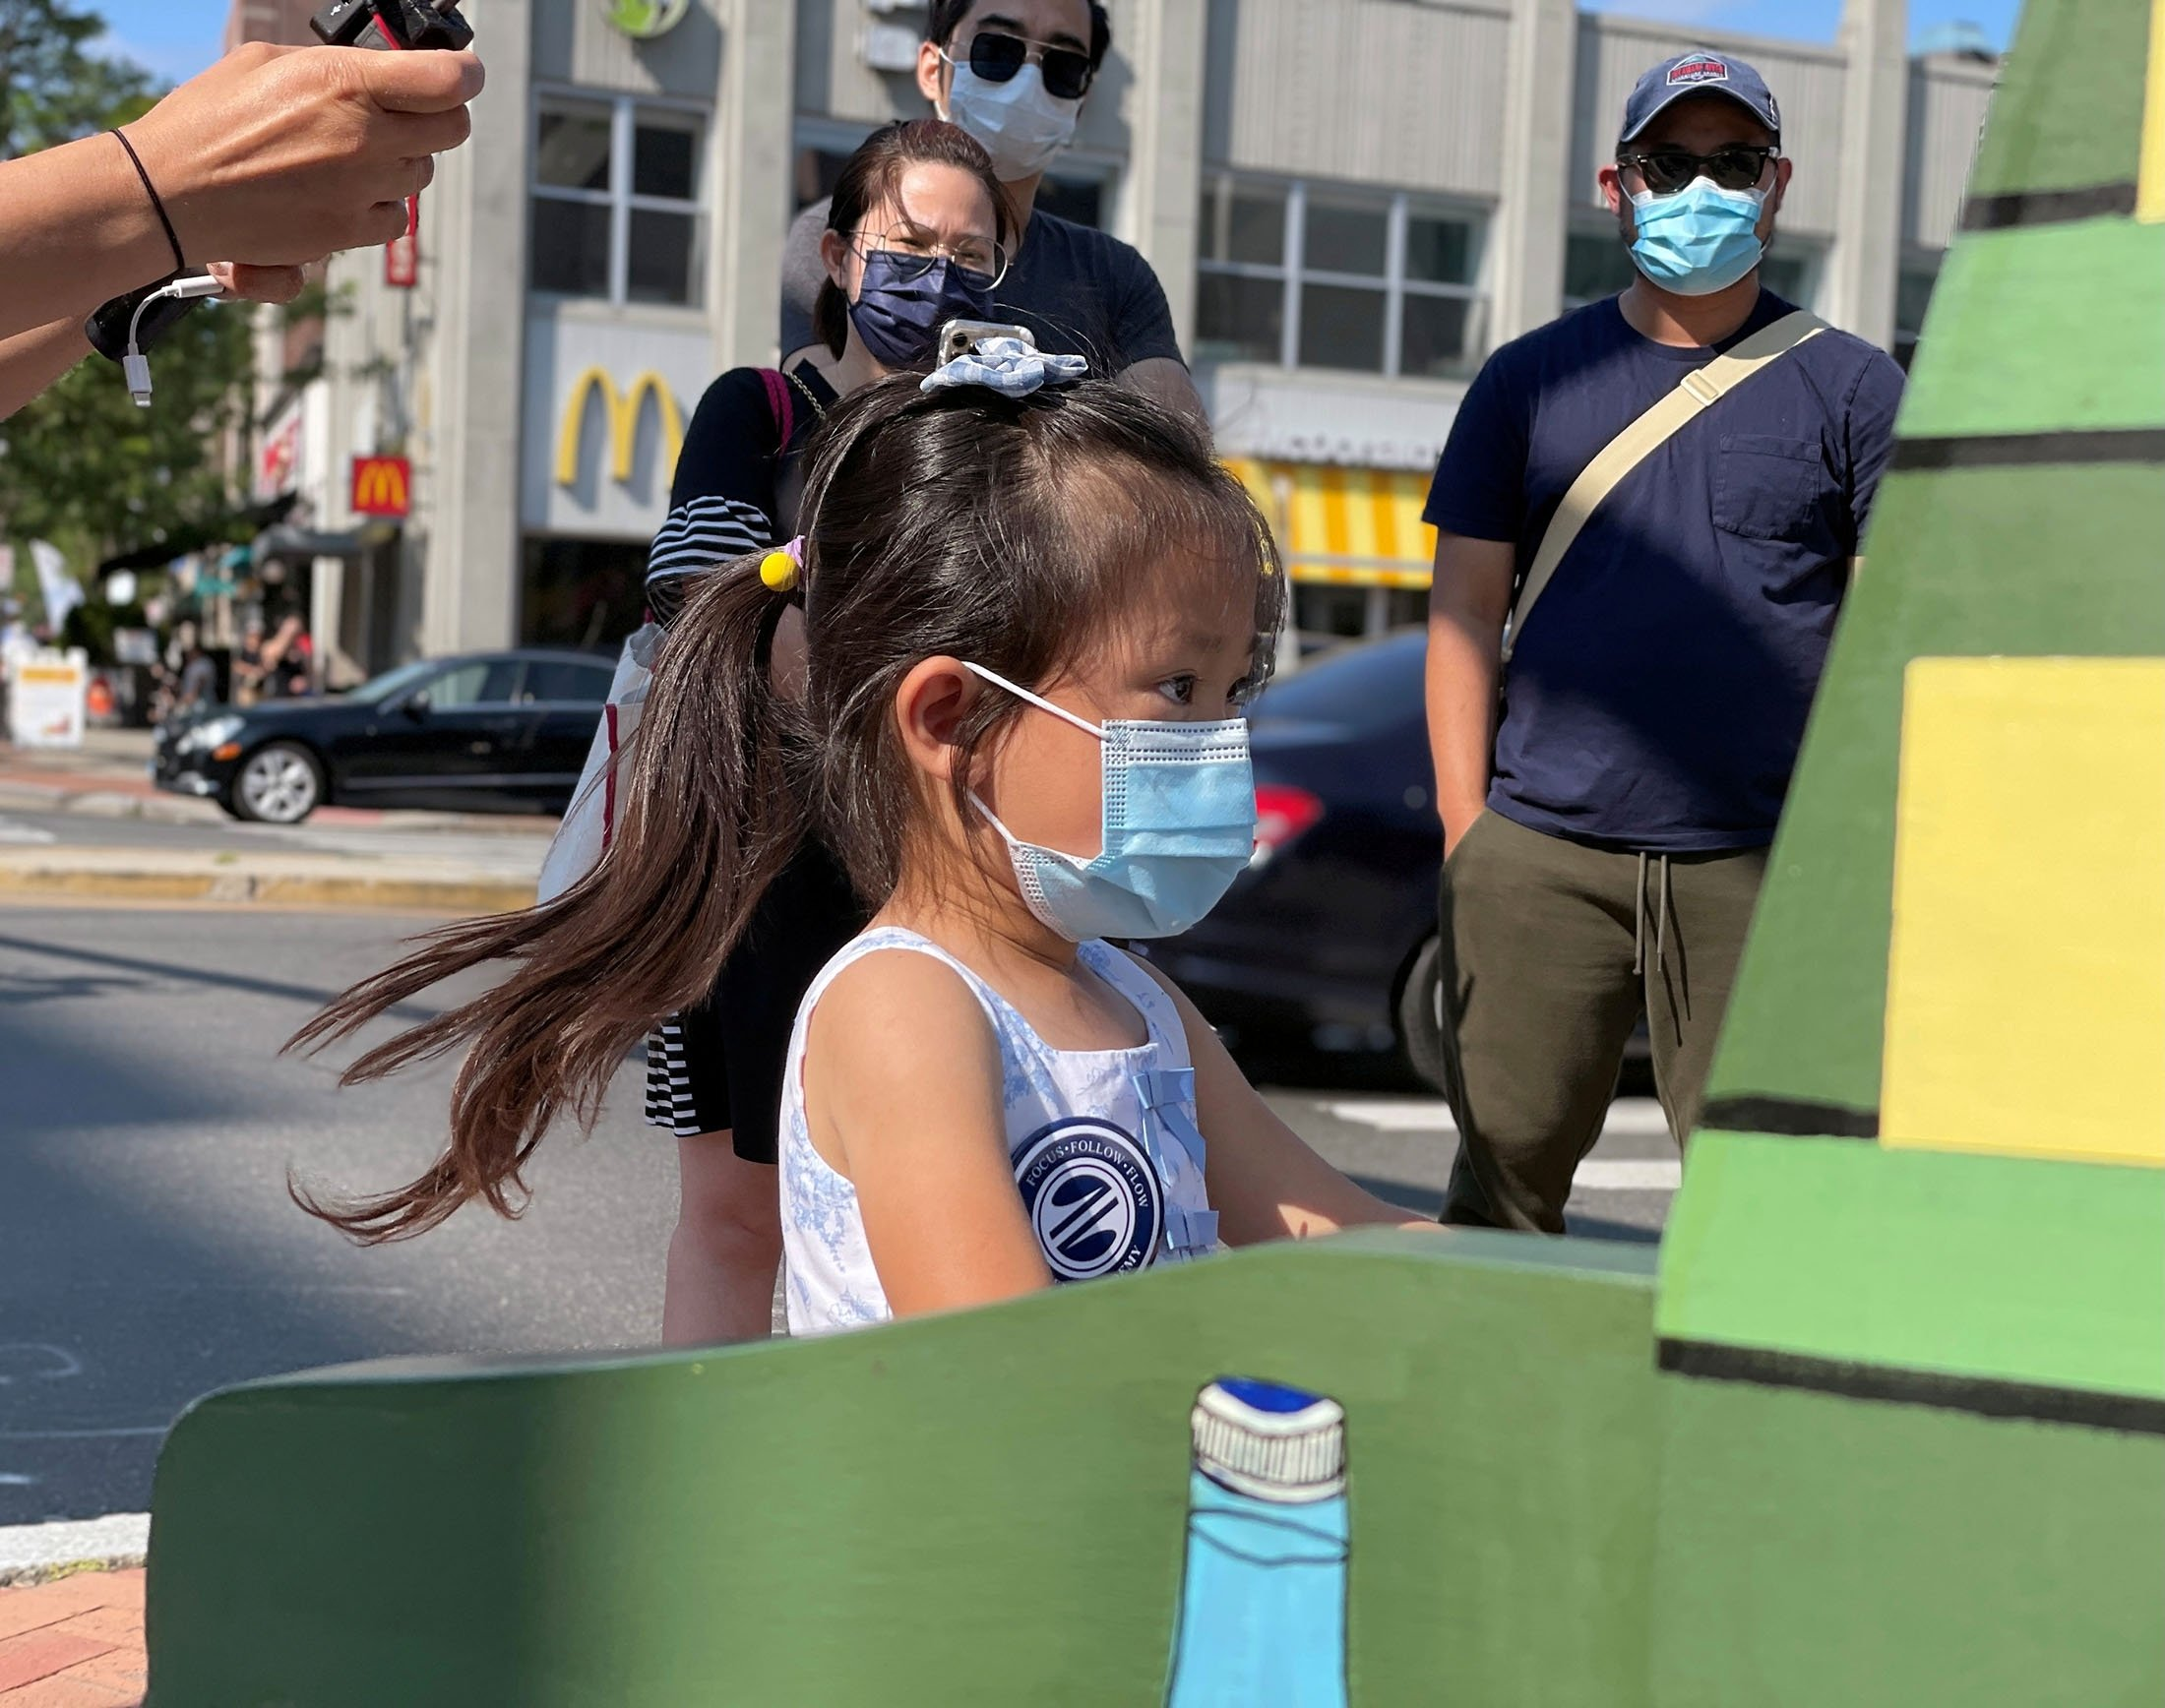 4-year-old Brigitte Xie plays piano in downtown Stamford, Connecticut, U.S., July 31, 2021. (Reuters Photo)